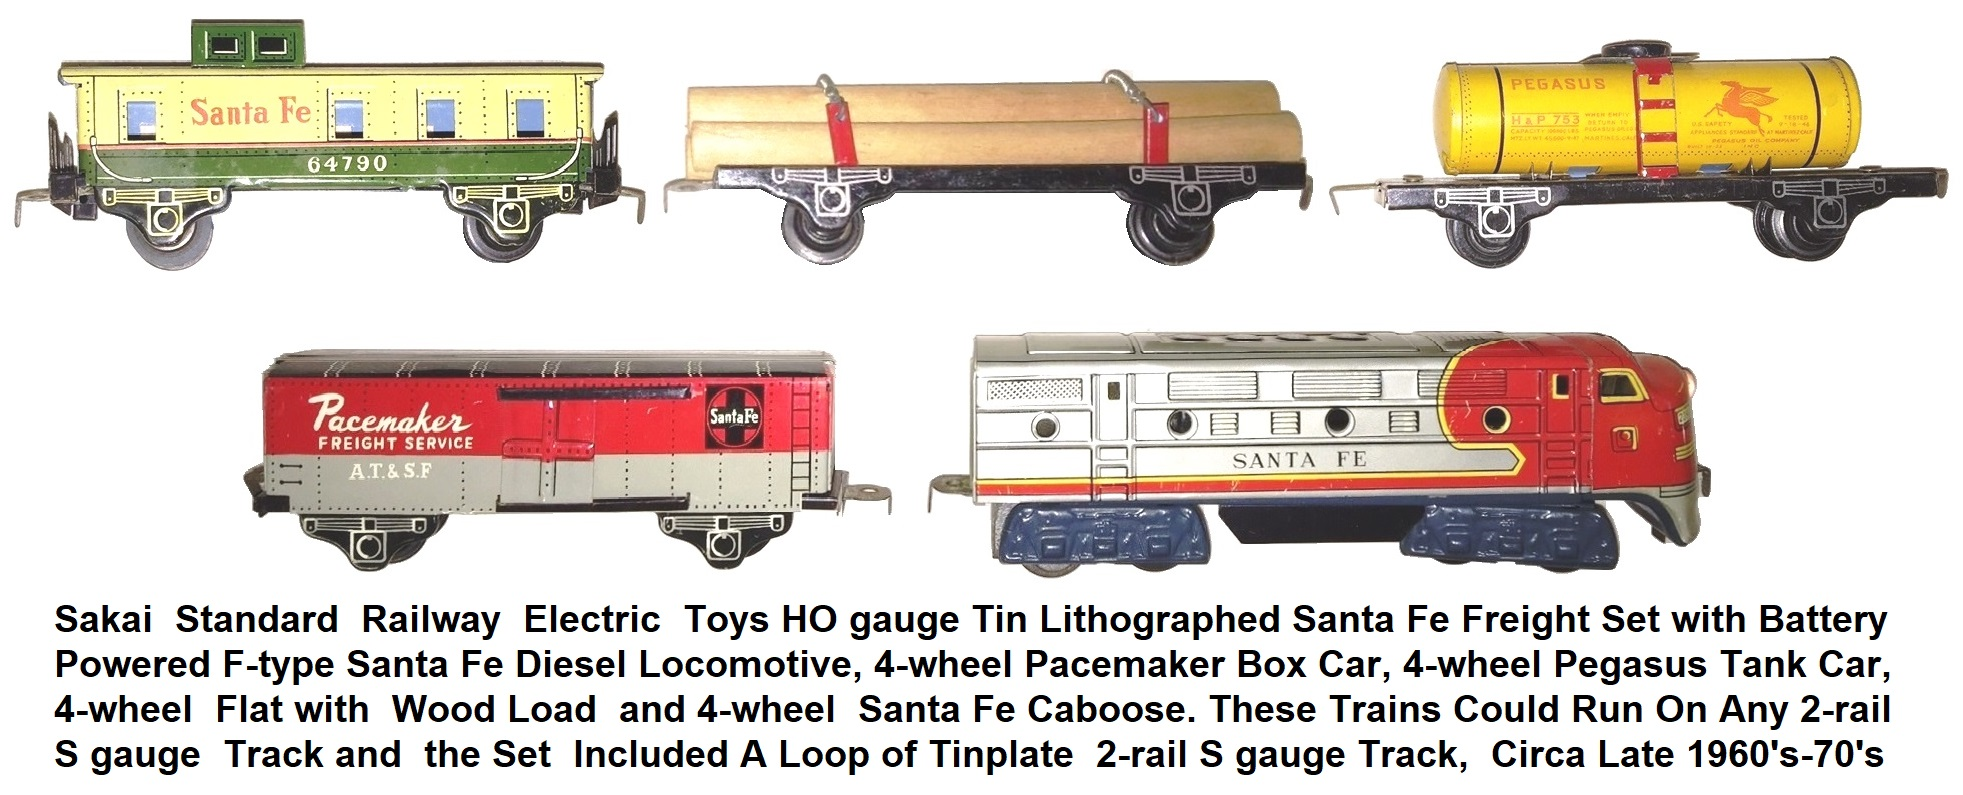 Sakai Standard Railway HO Santa Fe freight set with 4 wheel tinplate cars